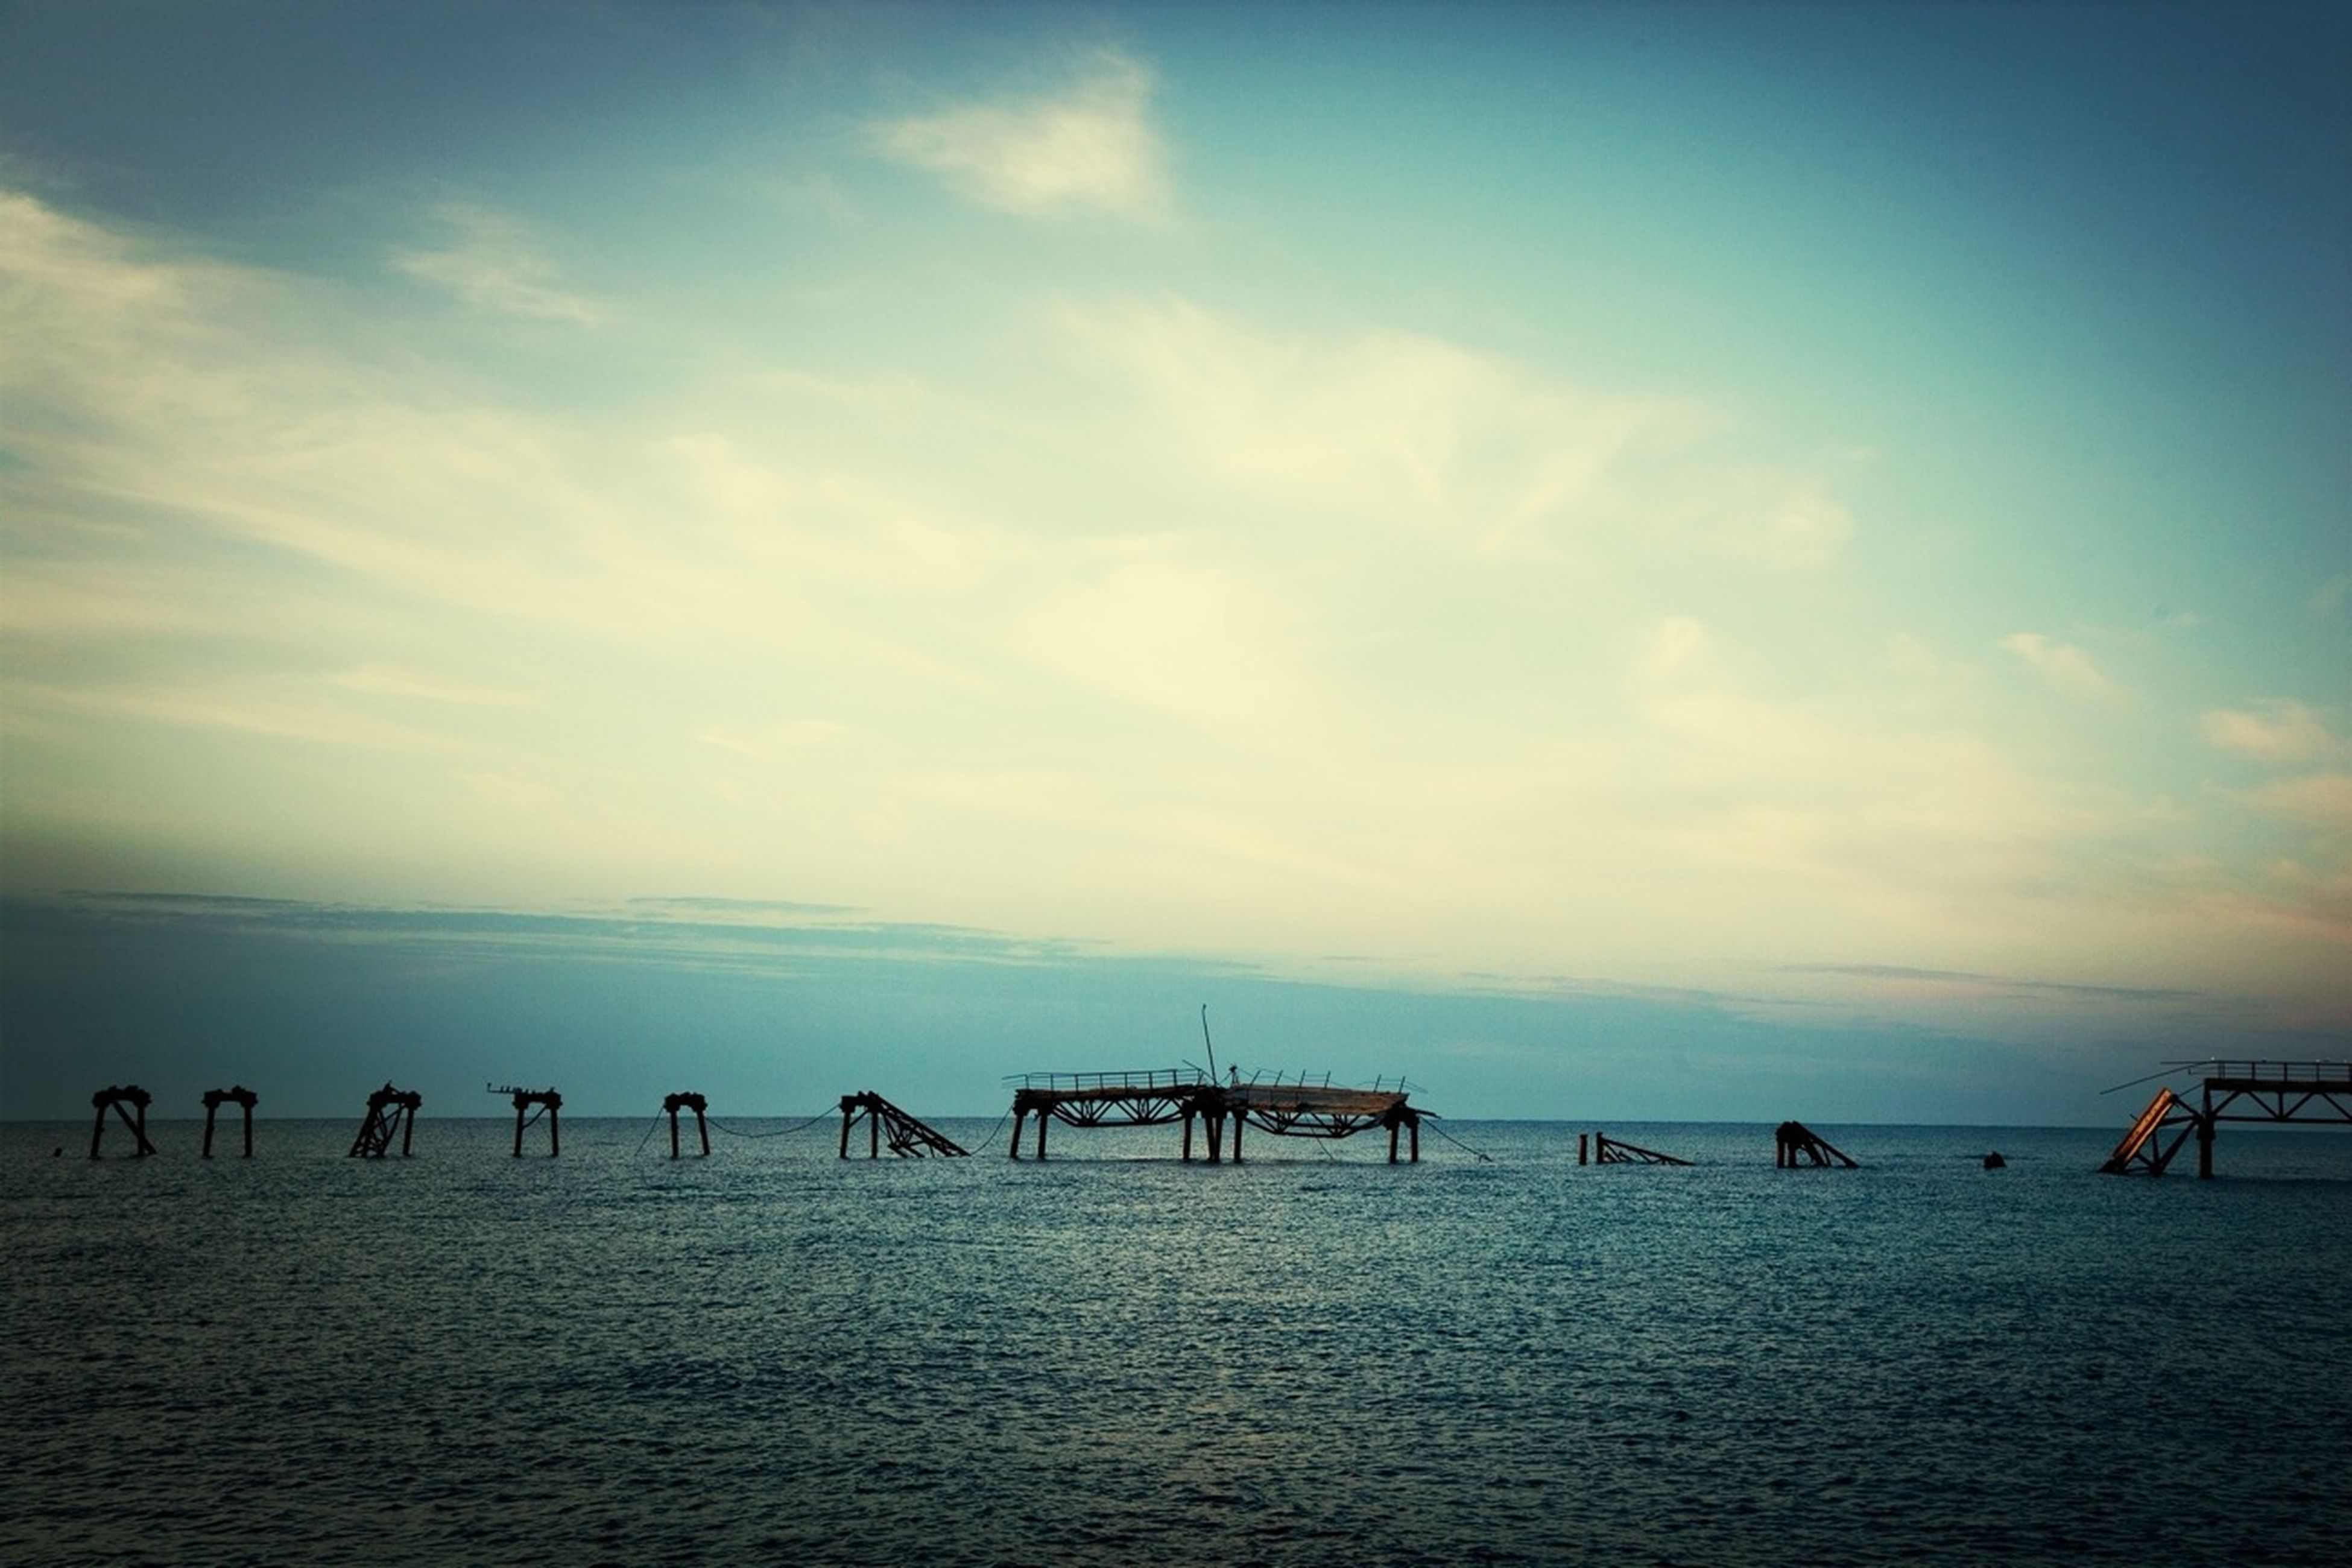 sea, sky, water, tranquil scene, tranquility, horizon over water, cloud - sky, scenics, beach, beauty in nature, cloud, nature, waterfront, pier, cloudy, built structure, incidental people, idyllic, outdoors, blue